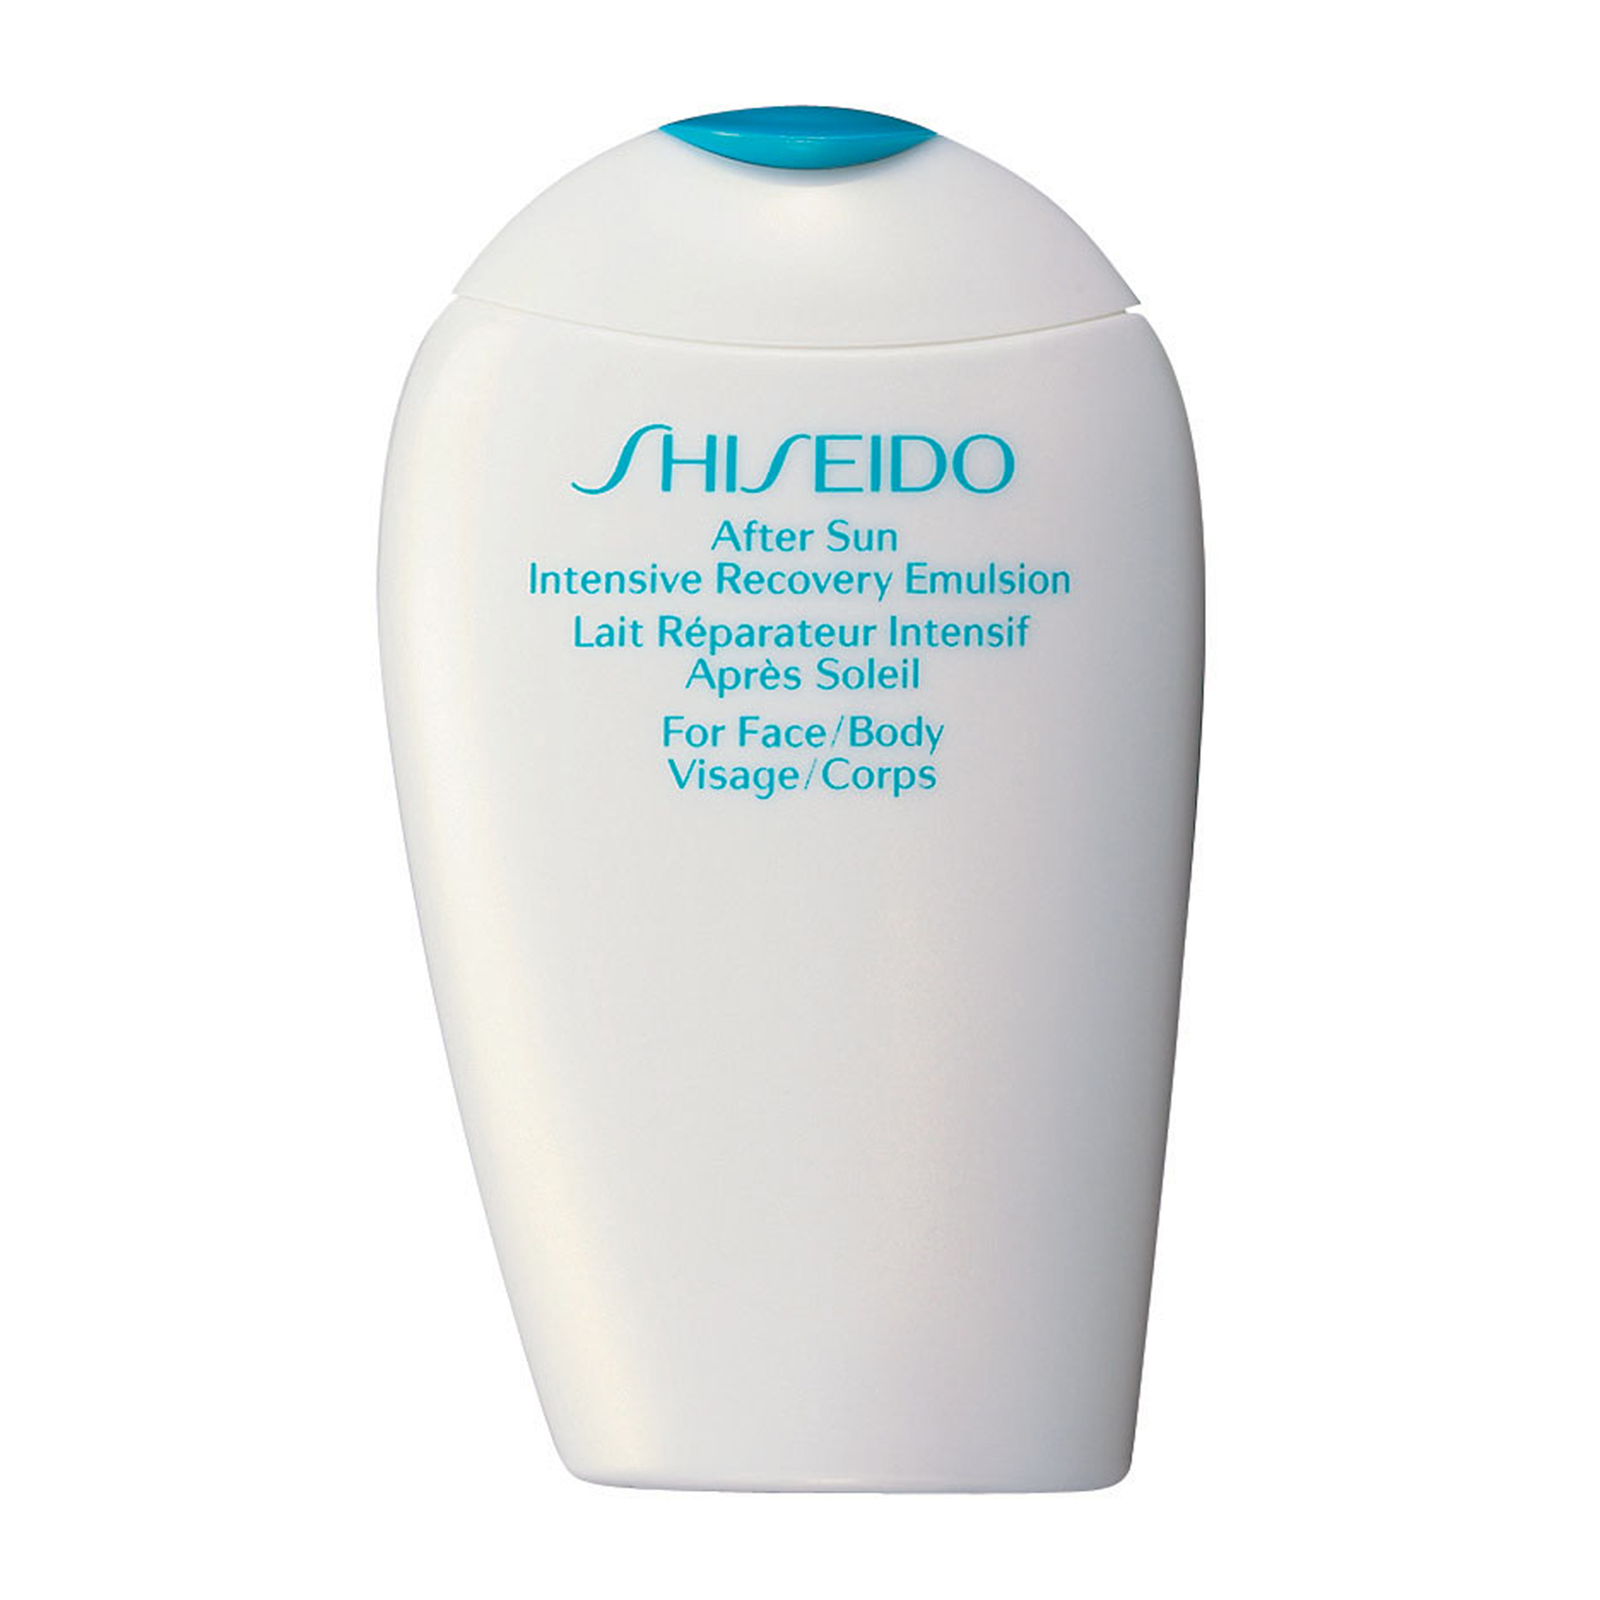 Shiseido_Suncare_After_Sun_Intensive_Recovery_Emulsion__Face__Body__150ml